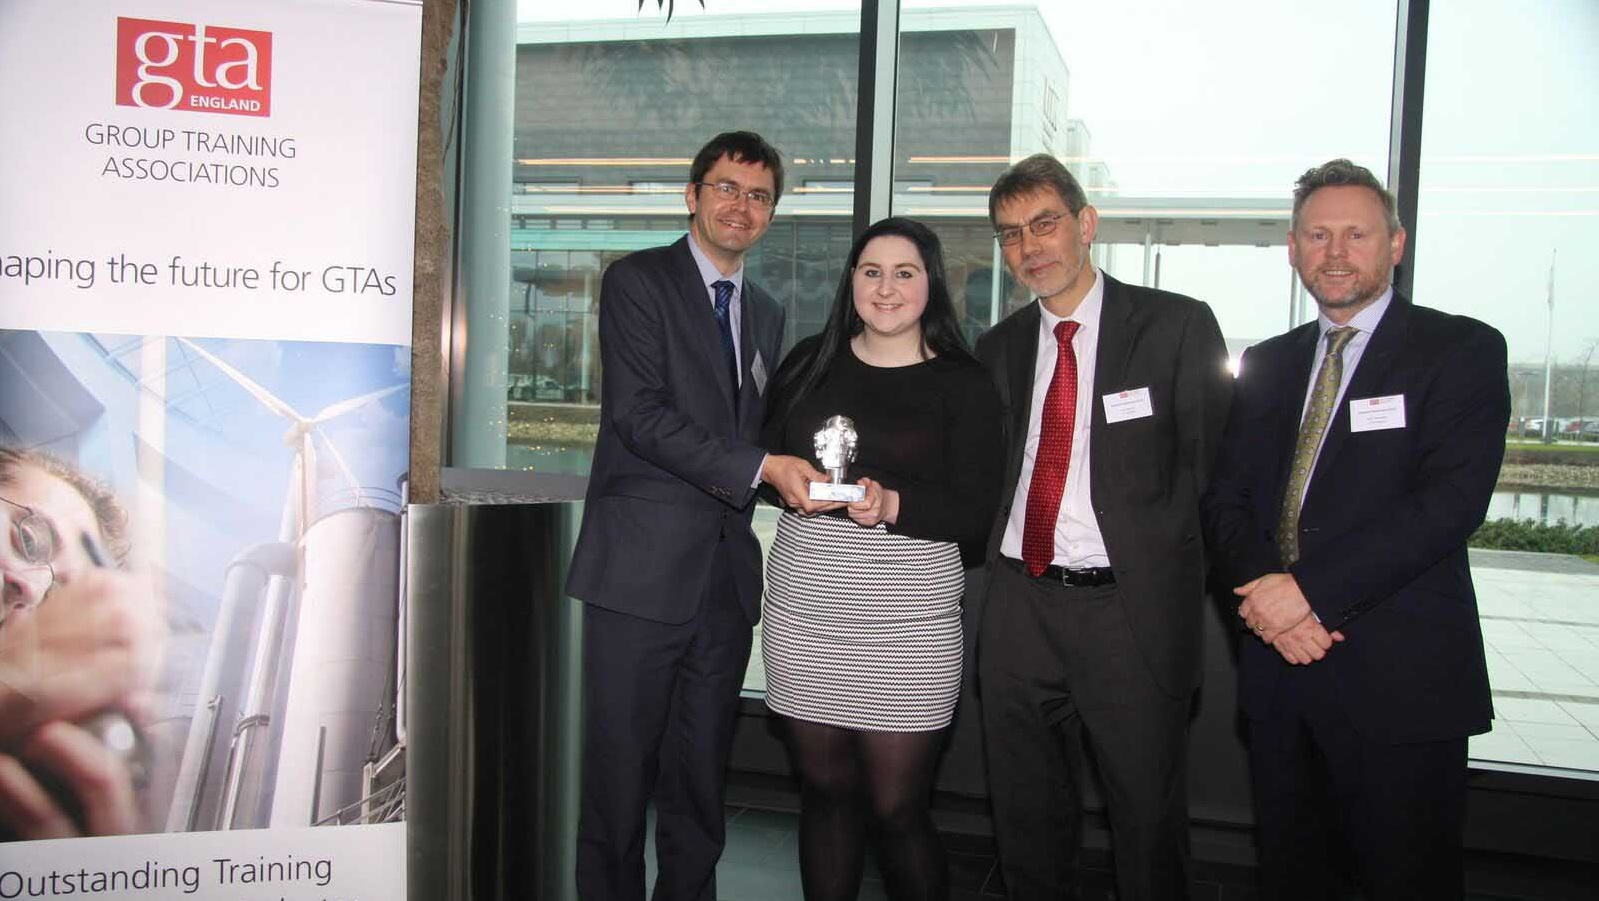 TBA PROTECTIVE TECHNOLOGIES APPRENTICE WINS A HAT-TRICK OF AWARDS